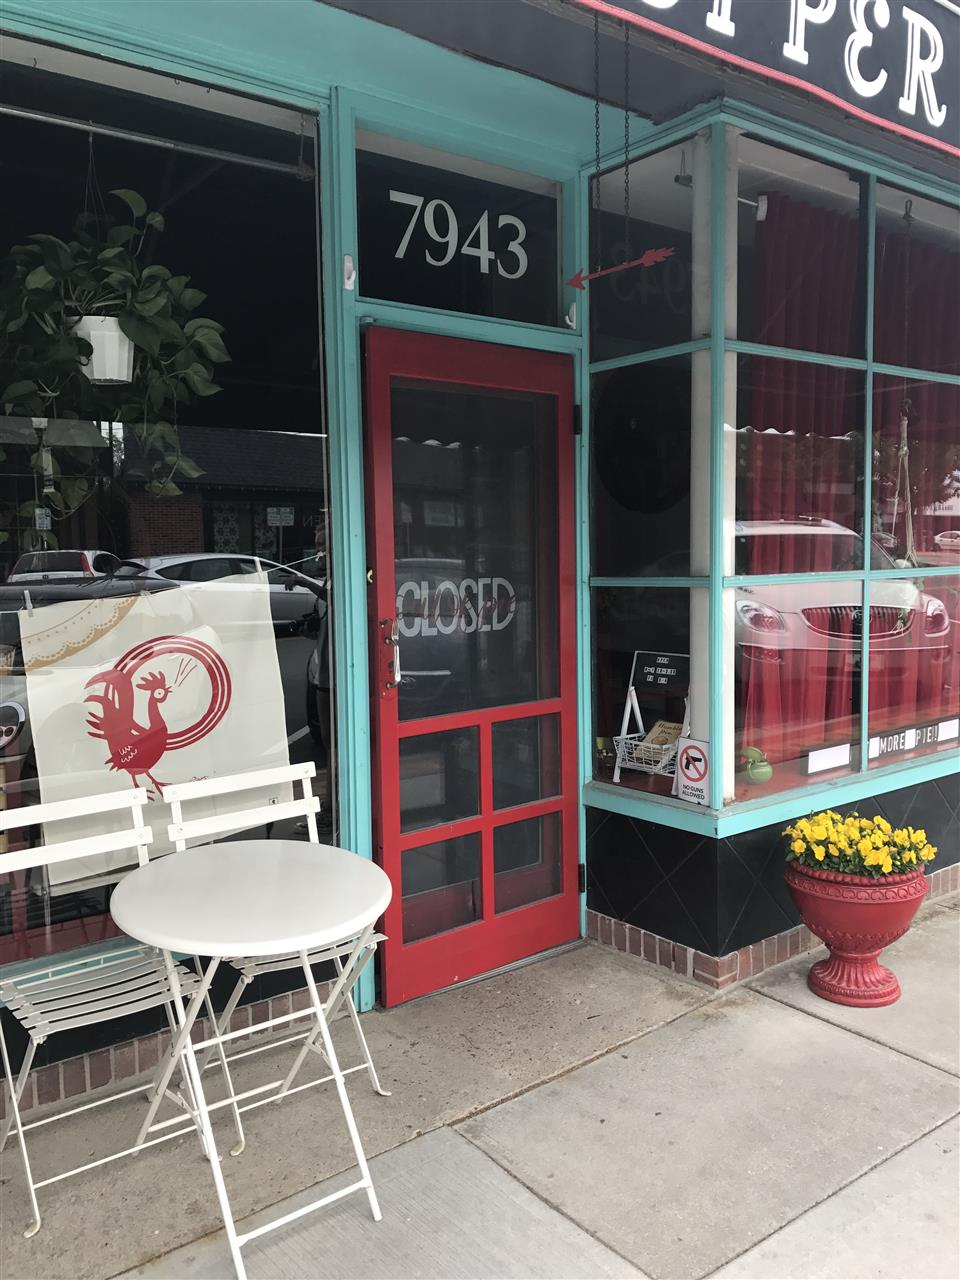 Serving sweet slices in Old Downtown Overland Park, The Upper Crust